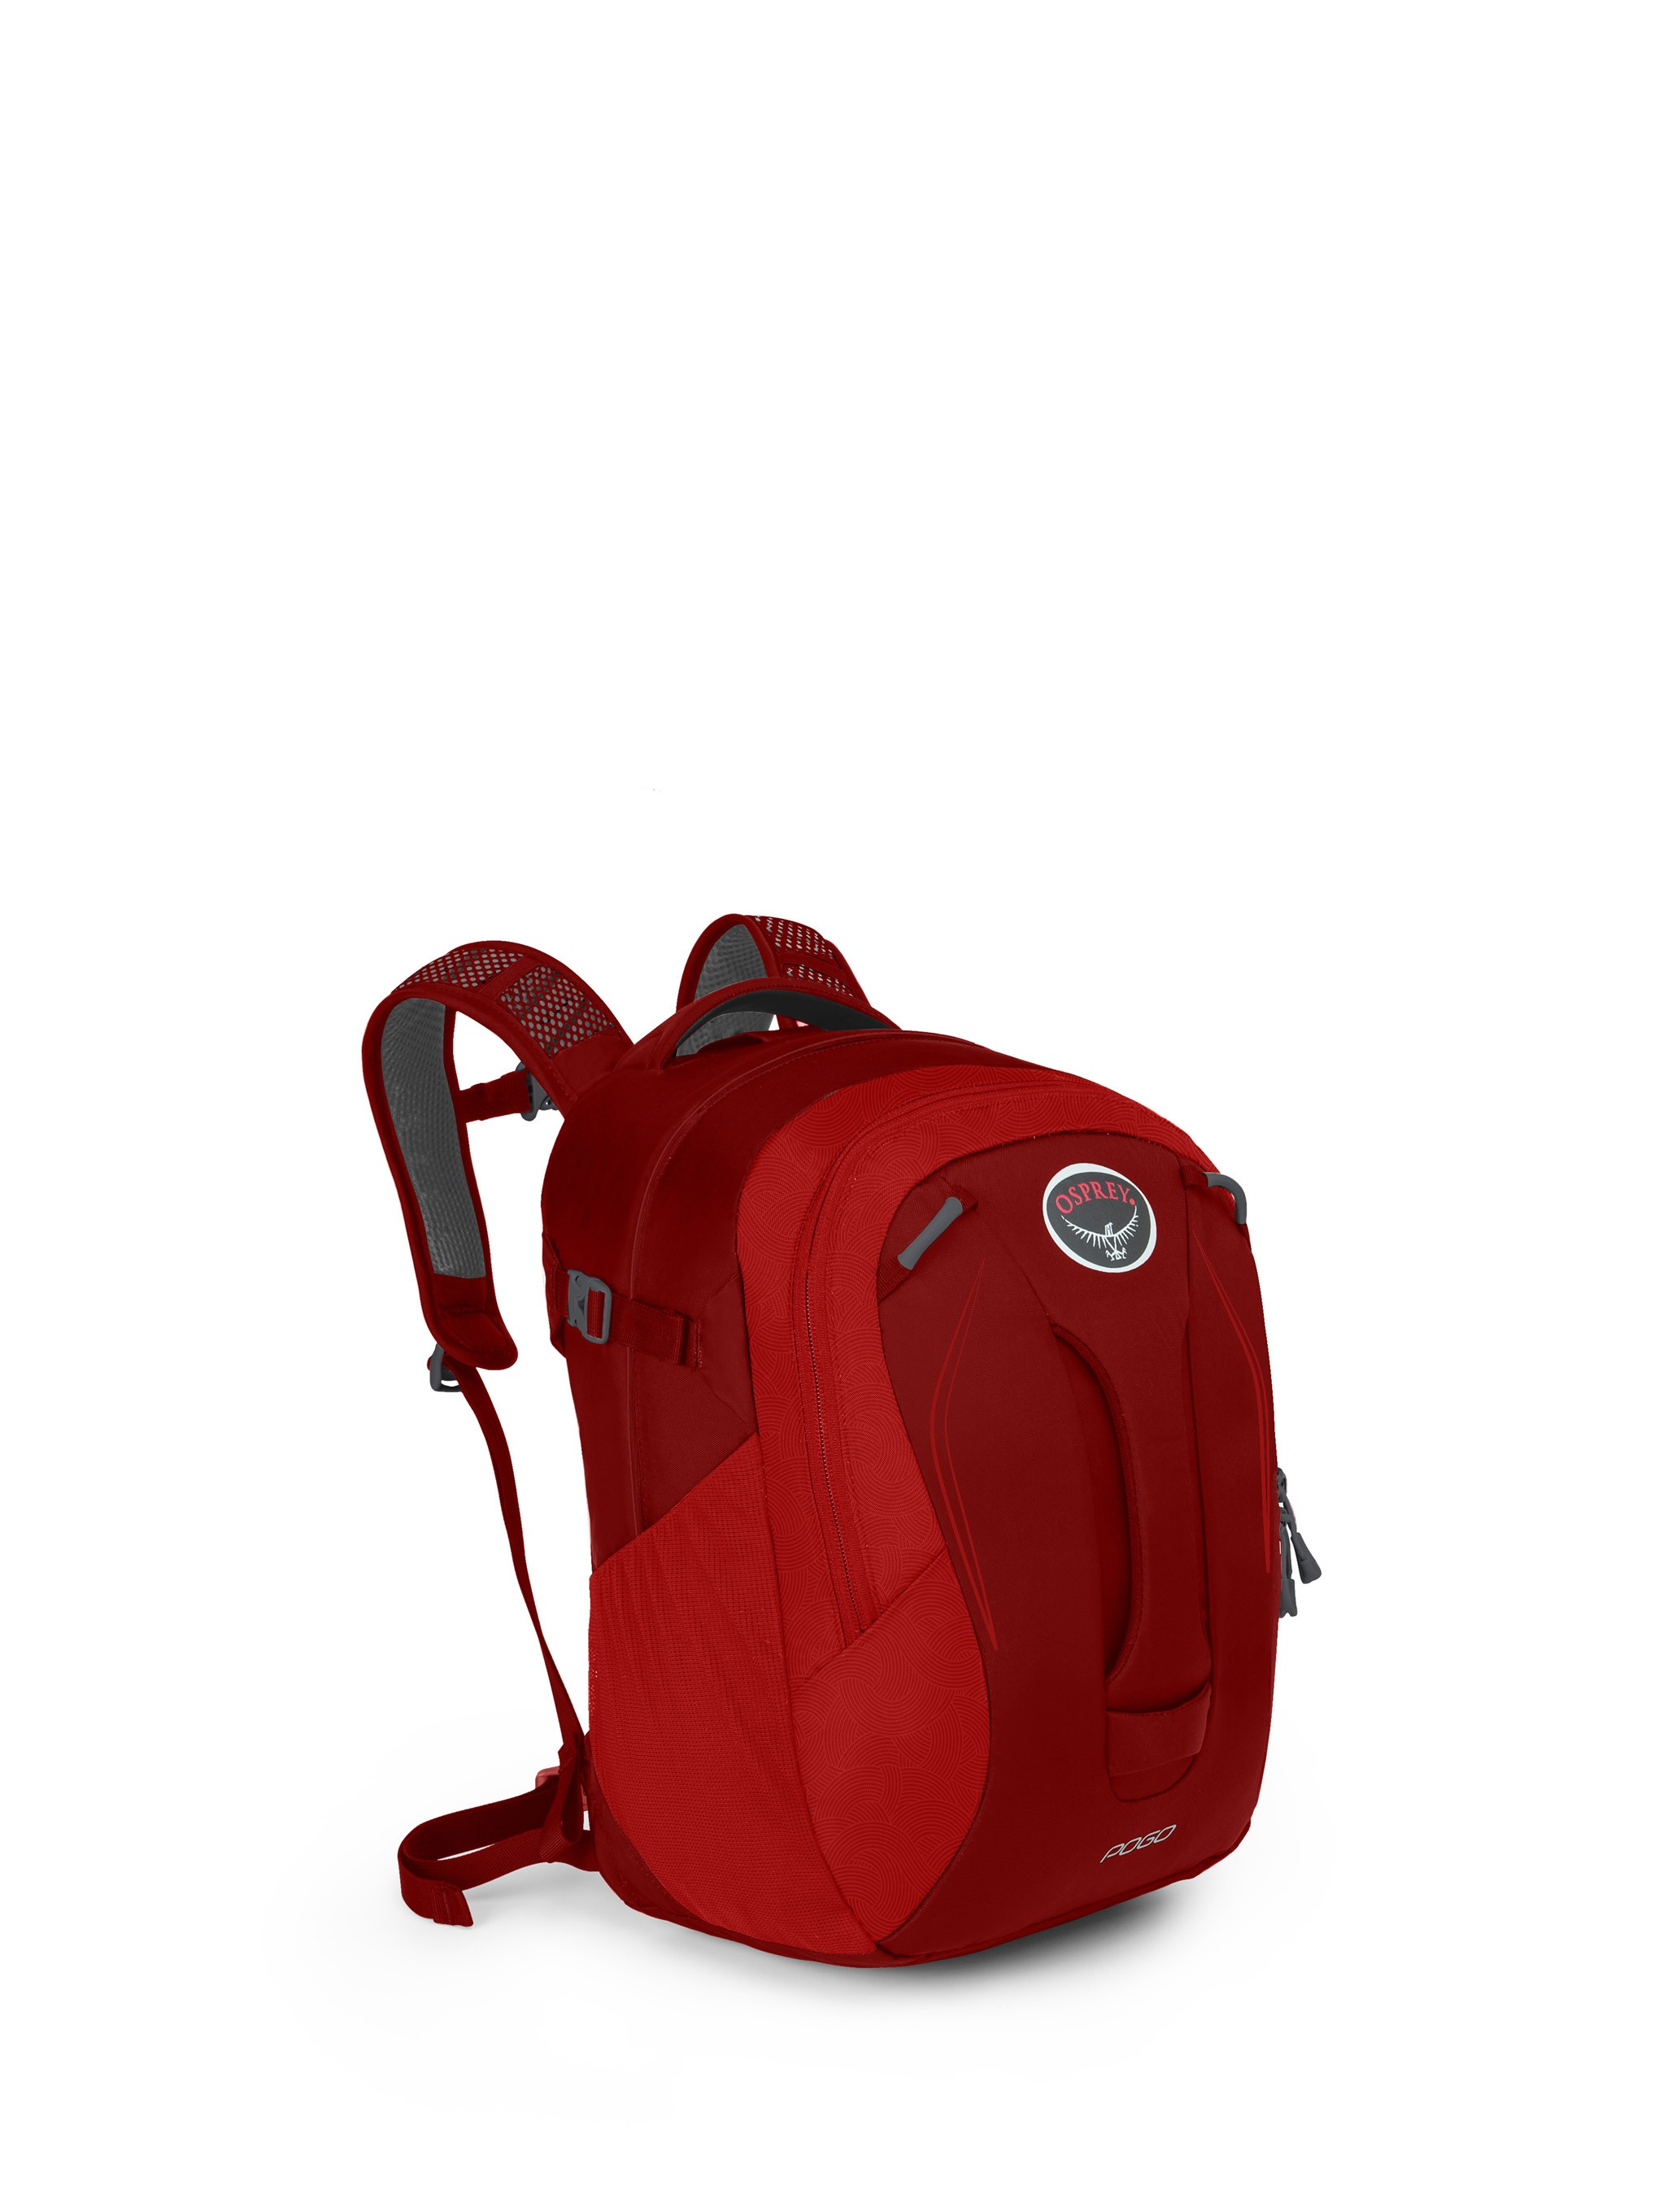 Pogo 24 Seven Series Osprey Our Products Outdoor